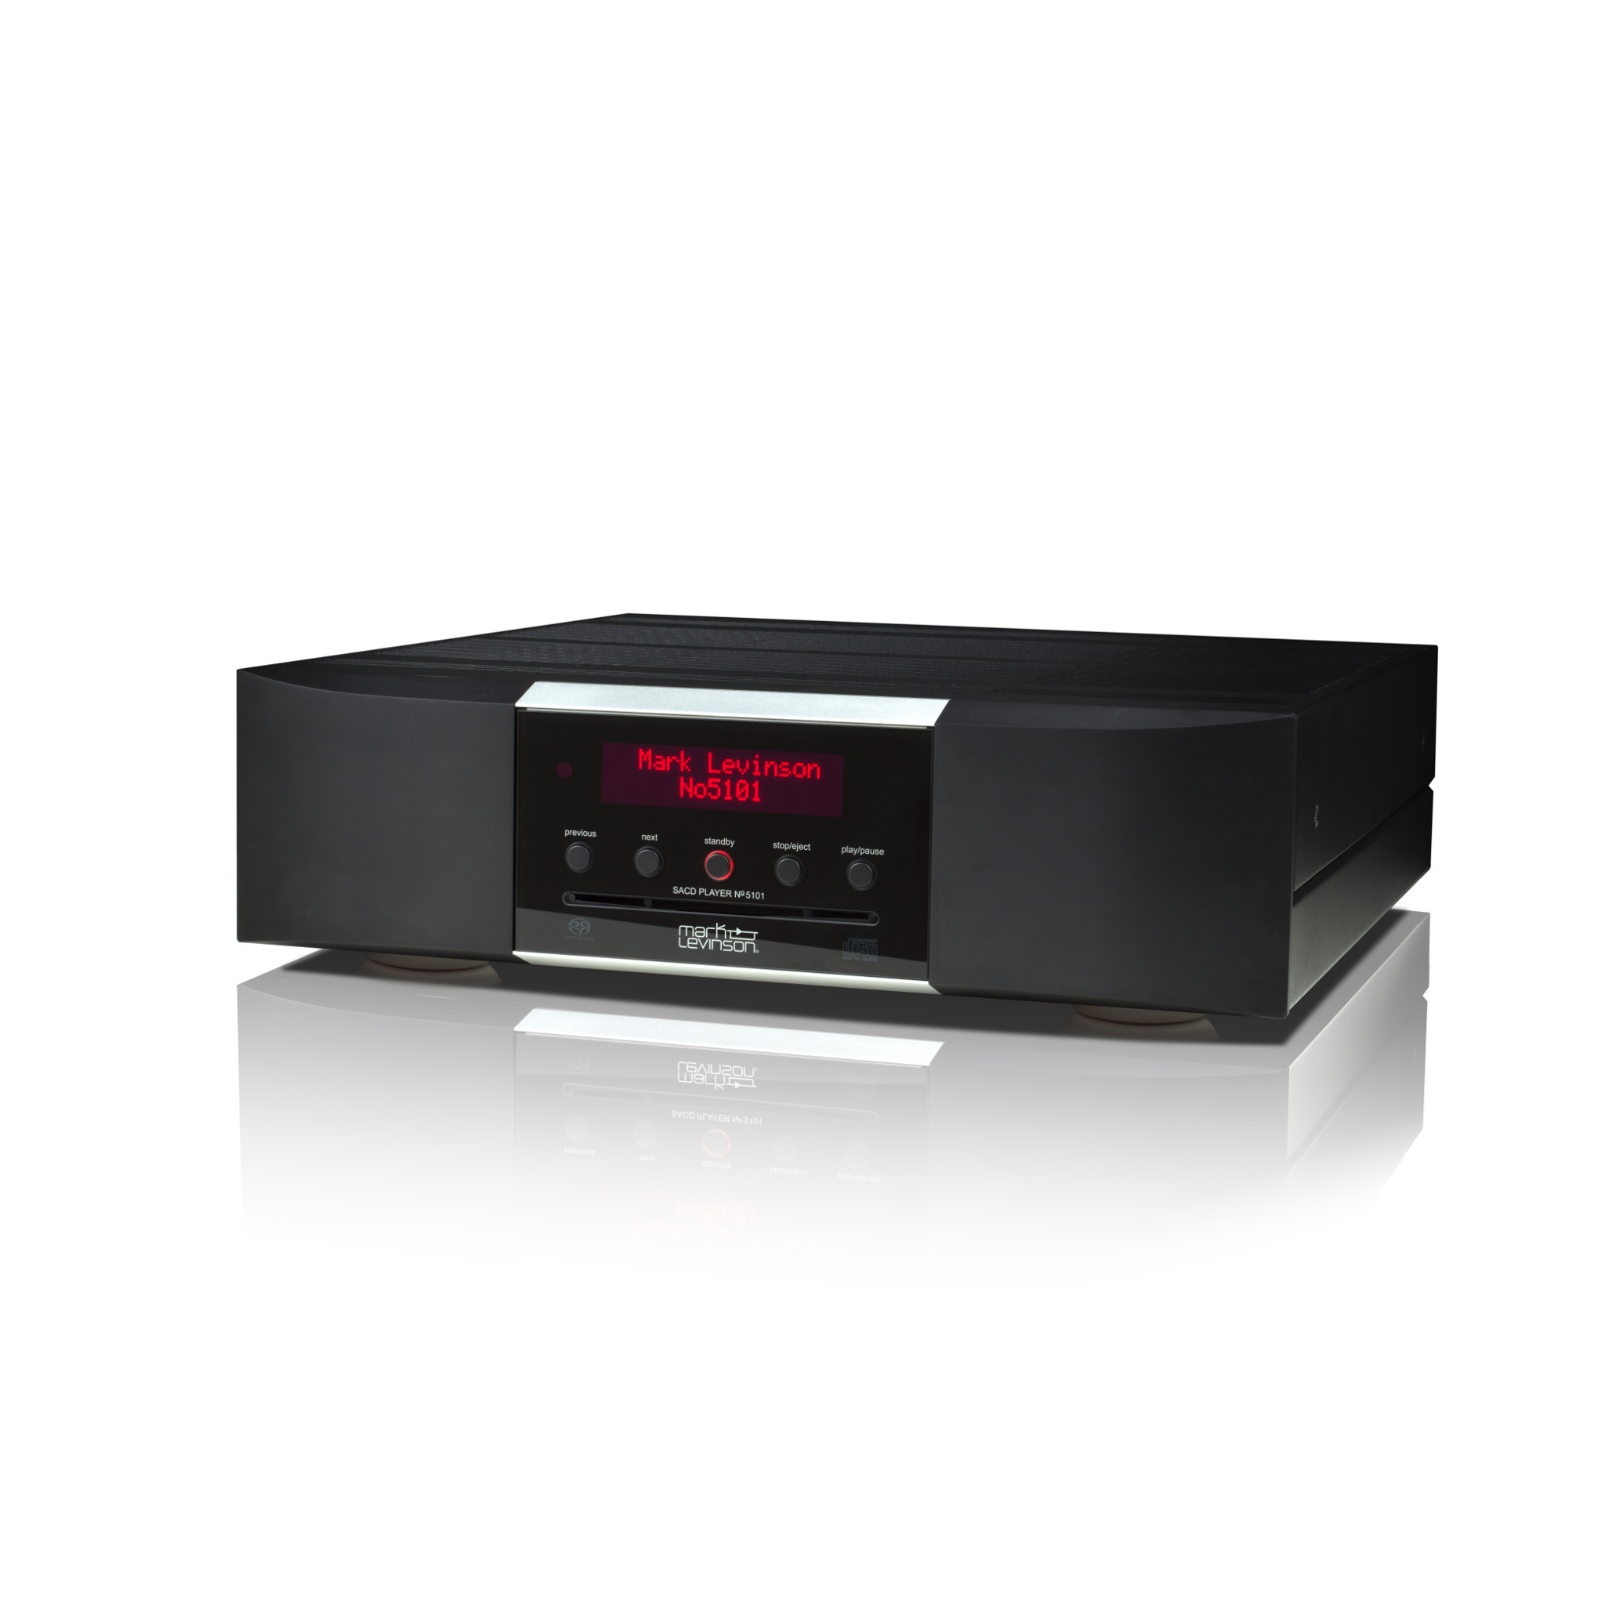 № 5101 - Black - Network Streaming SACD Player and DAC - Hero